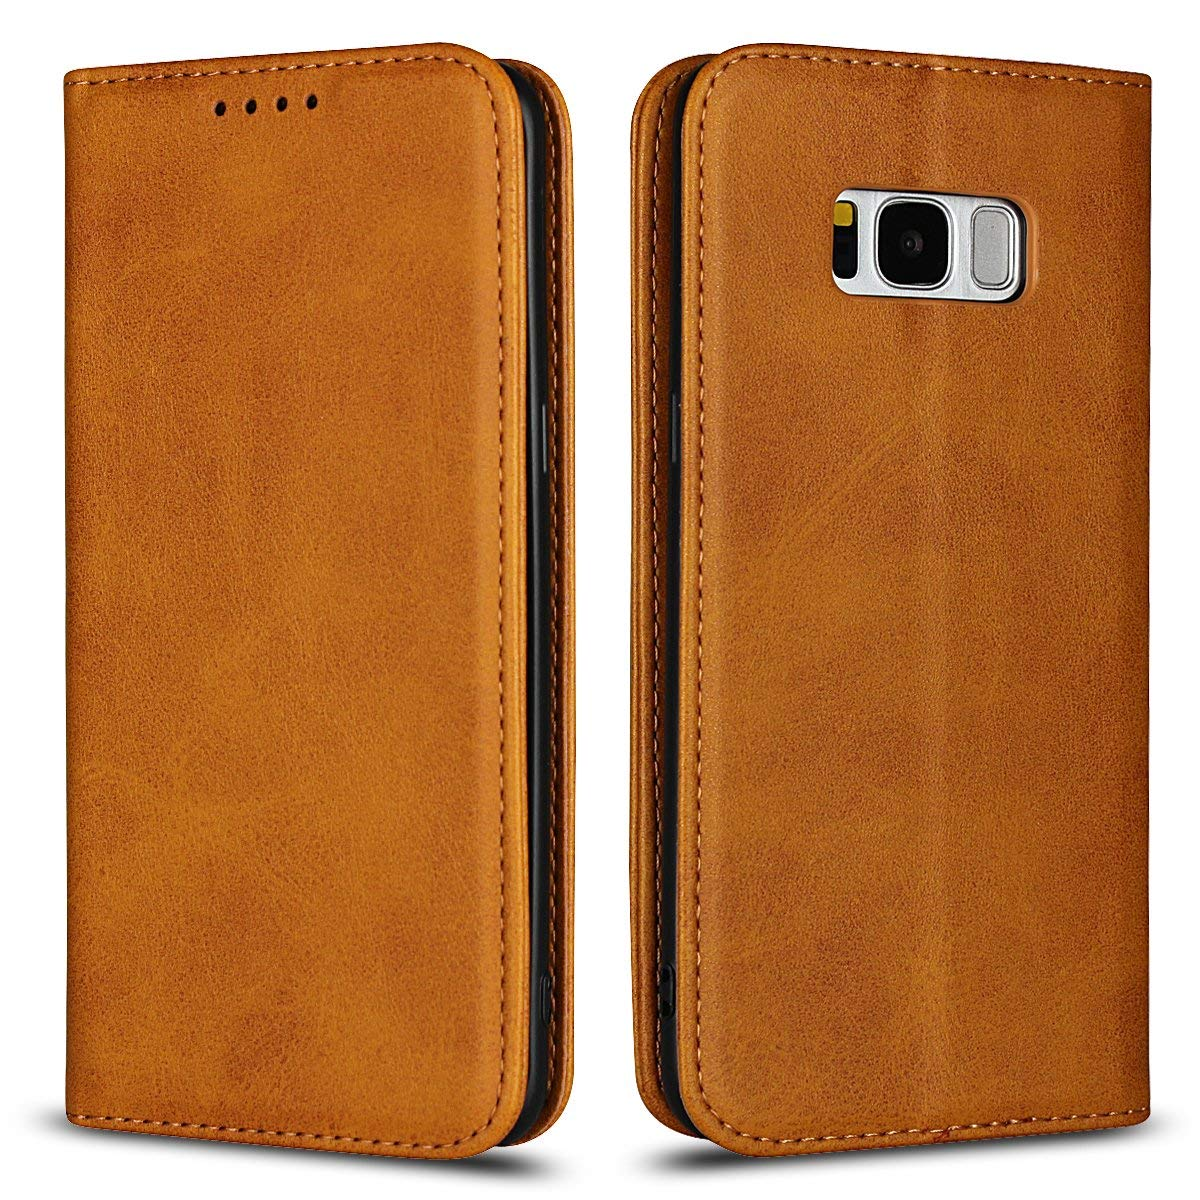 Scheam For Samsung Galaxy S8 Plus Case, [Extra Card Slot] [Wallet Case] PU Leather TPU Casing Protects [Drop Protection] Cover for Samsung Galaxy S8 Plus, Coffee